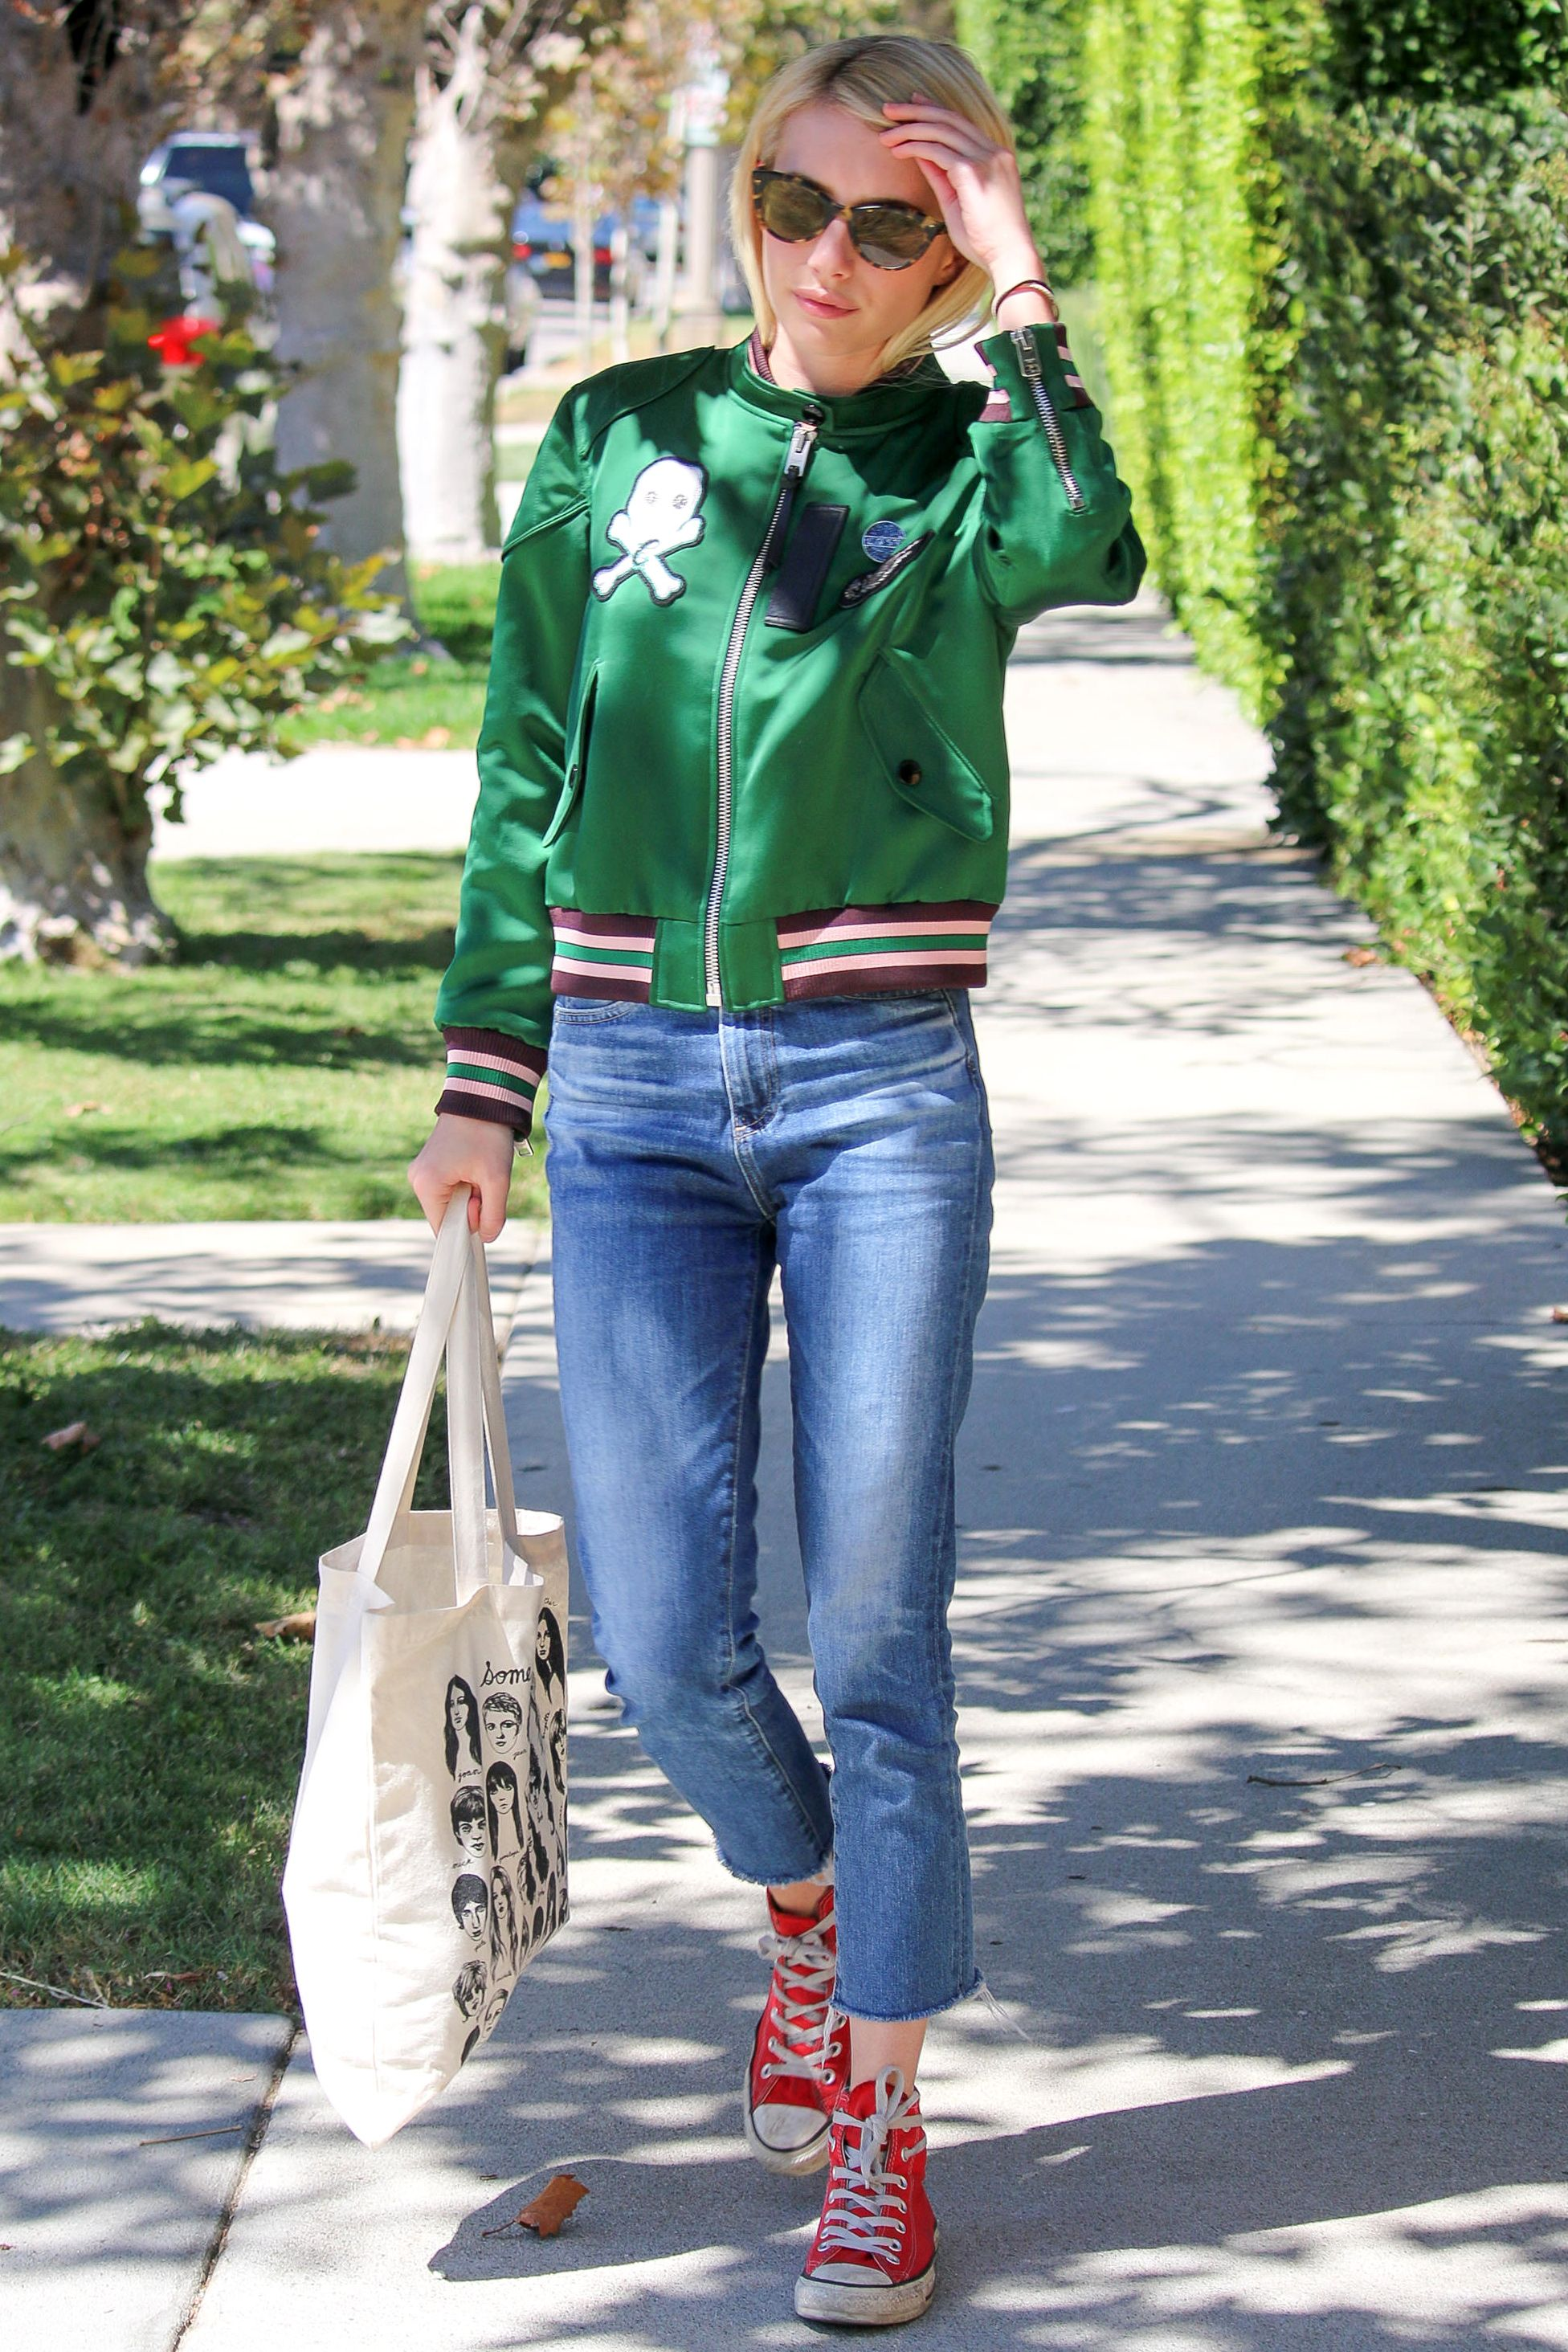 514b84ce18c73c These 19 Celebrities Are Obsessed with Wearing Converse - Emma Roberts from  InStyle.com